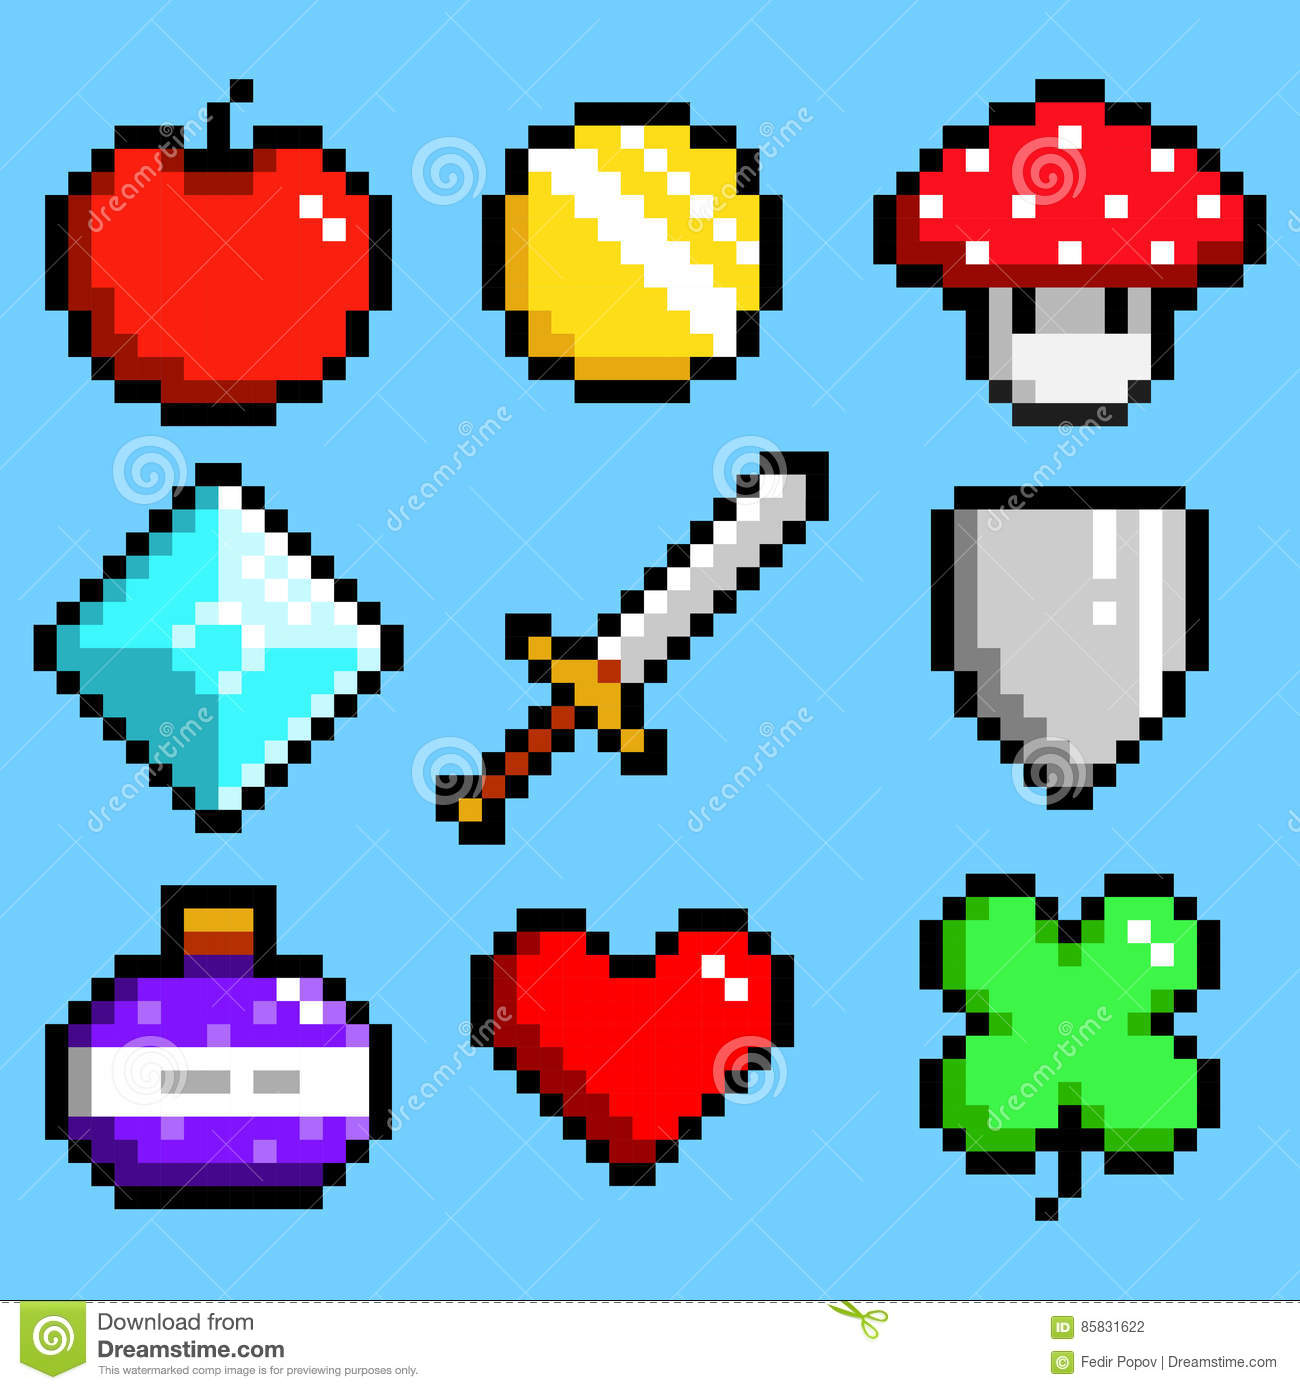 set-minimalistic-pixel-art-vector-objects-isolated-game-bit-style-graphic-symbols-group-collection-apple-85831622 Pixel Art Vector @koolgadgetz.com.info